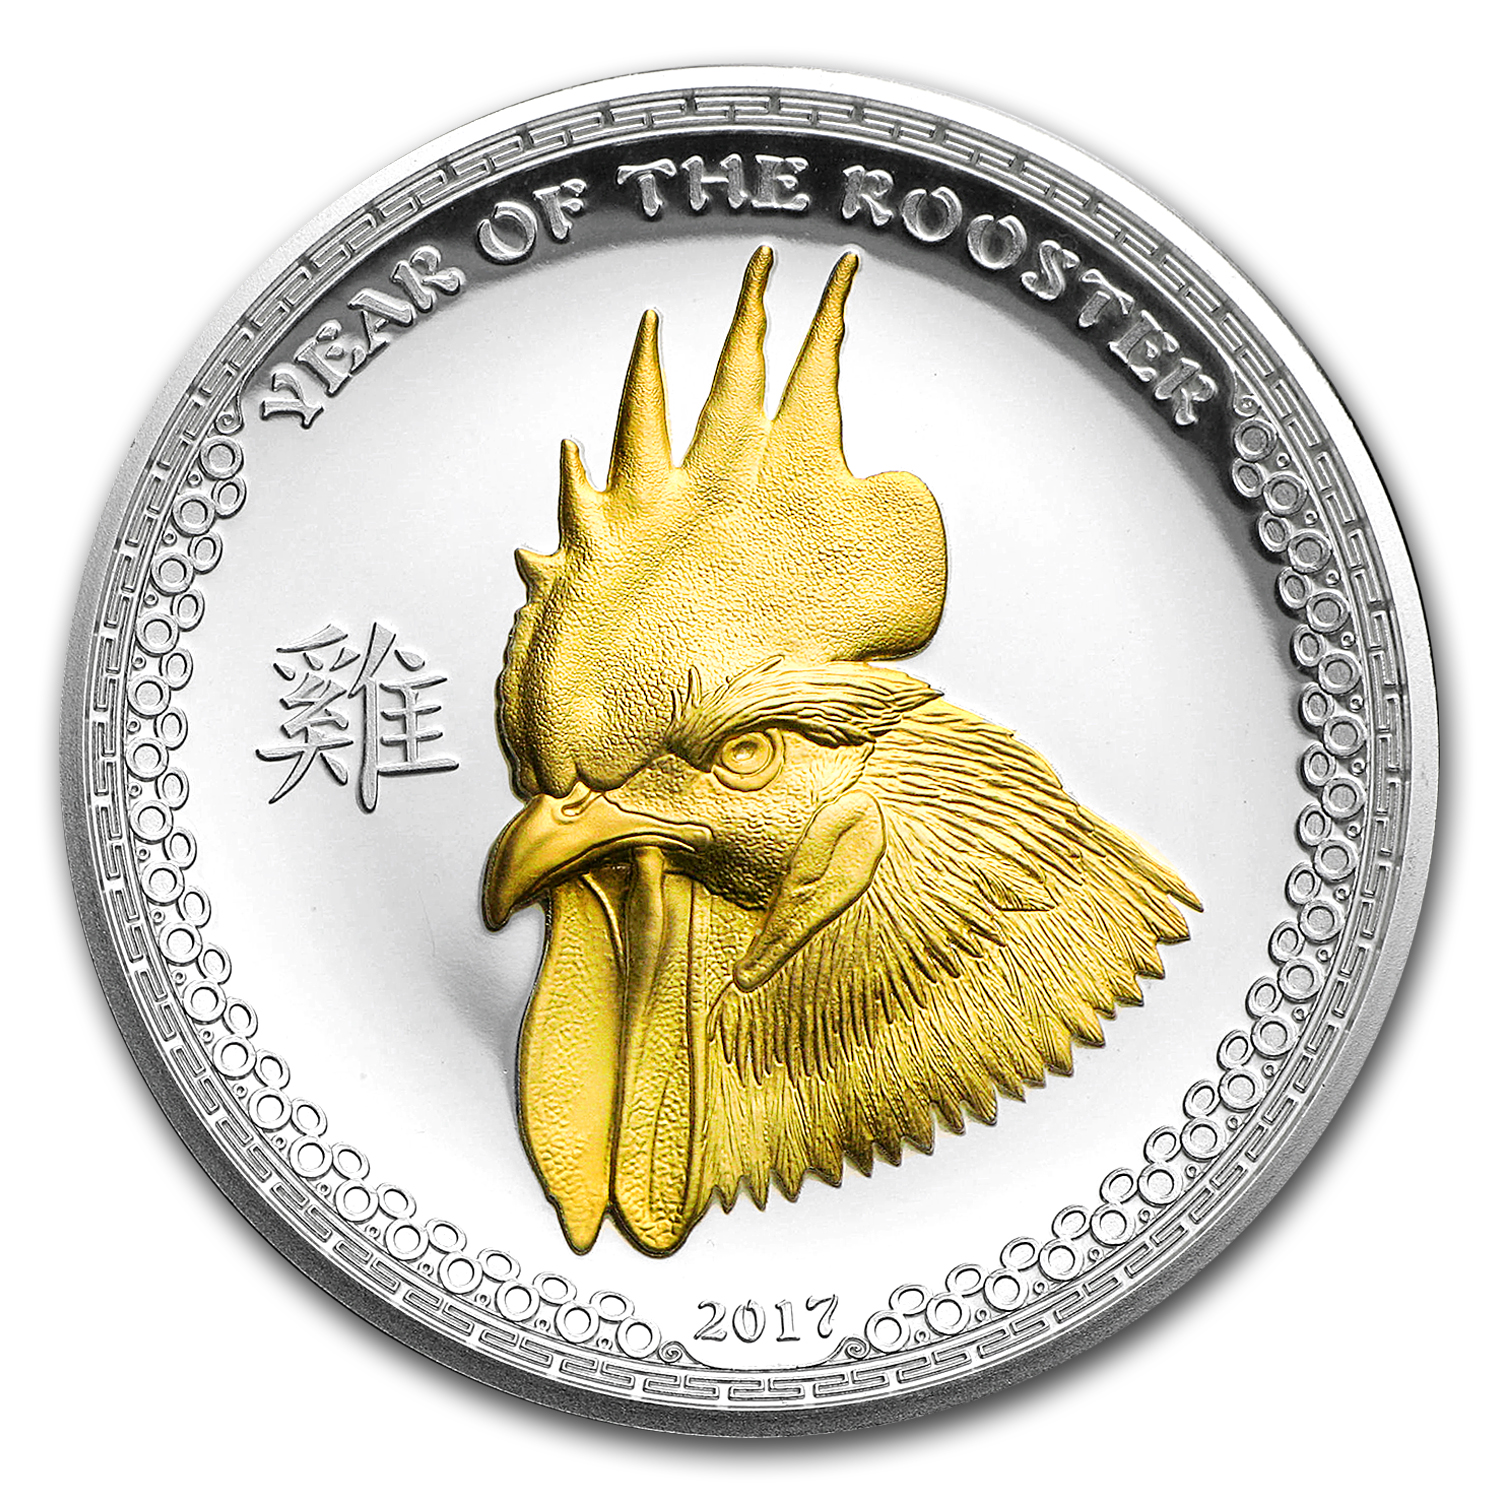 2017 Palau 1 oz Silver $5 Year of the Rooster (Gilded Gold)